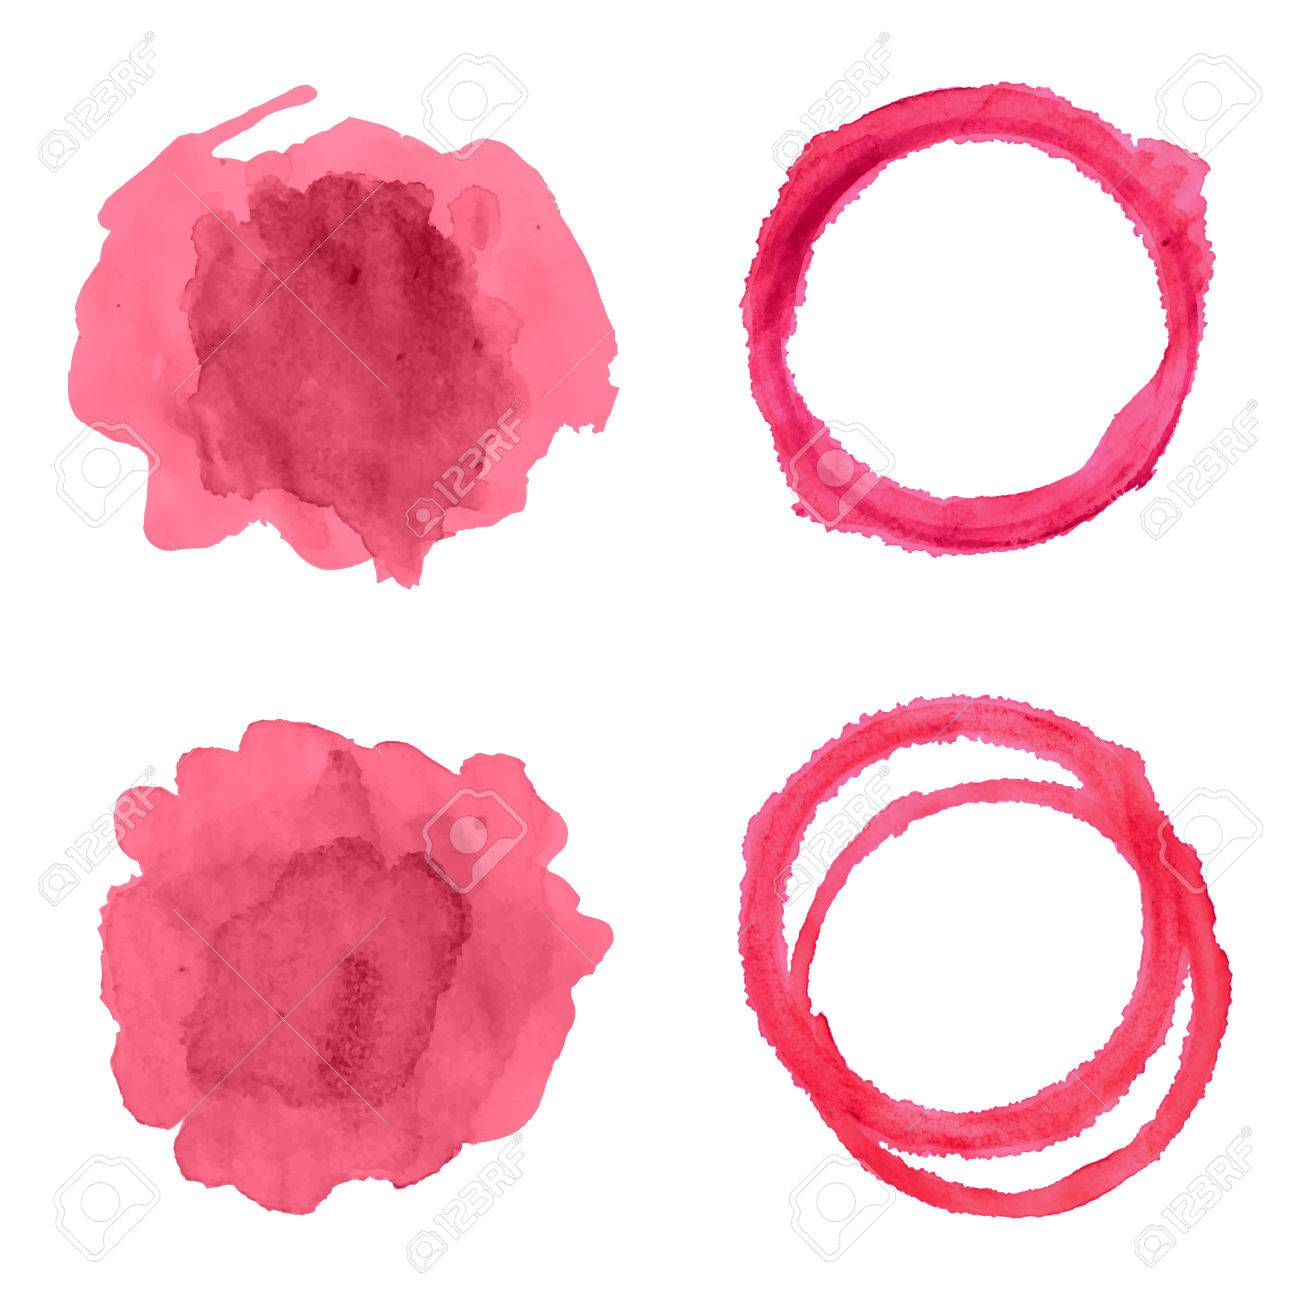 Vector set with different red wine stains isolated on white background. - 61135258